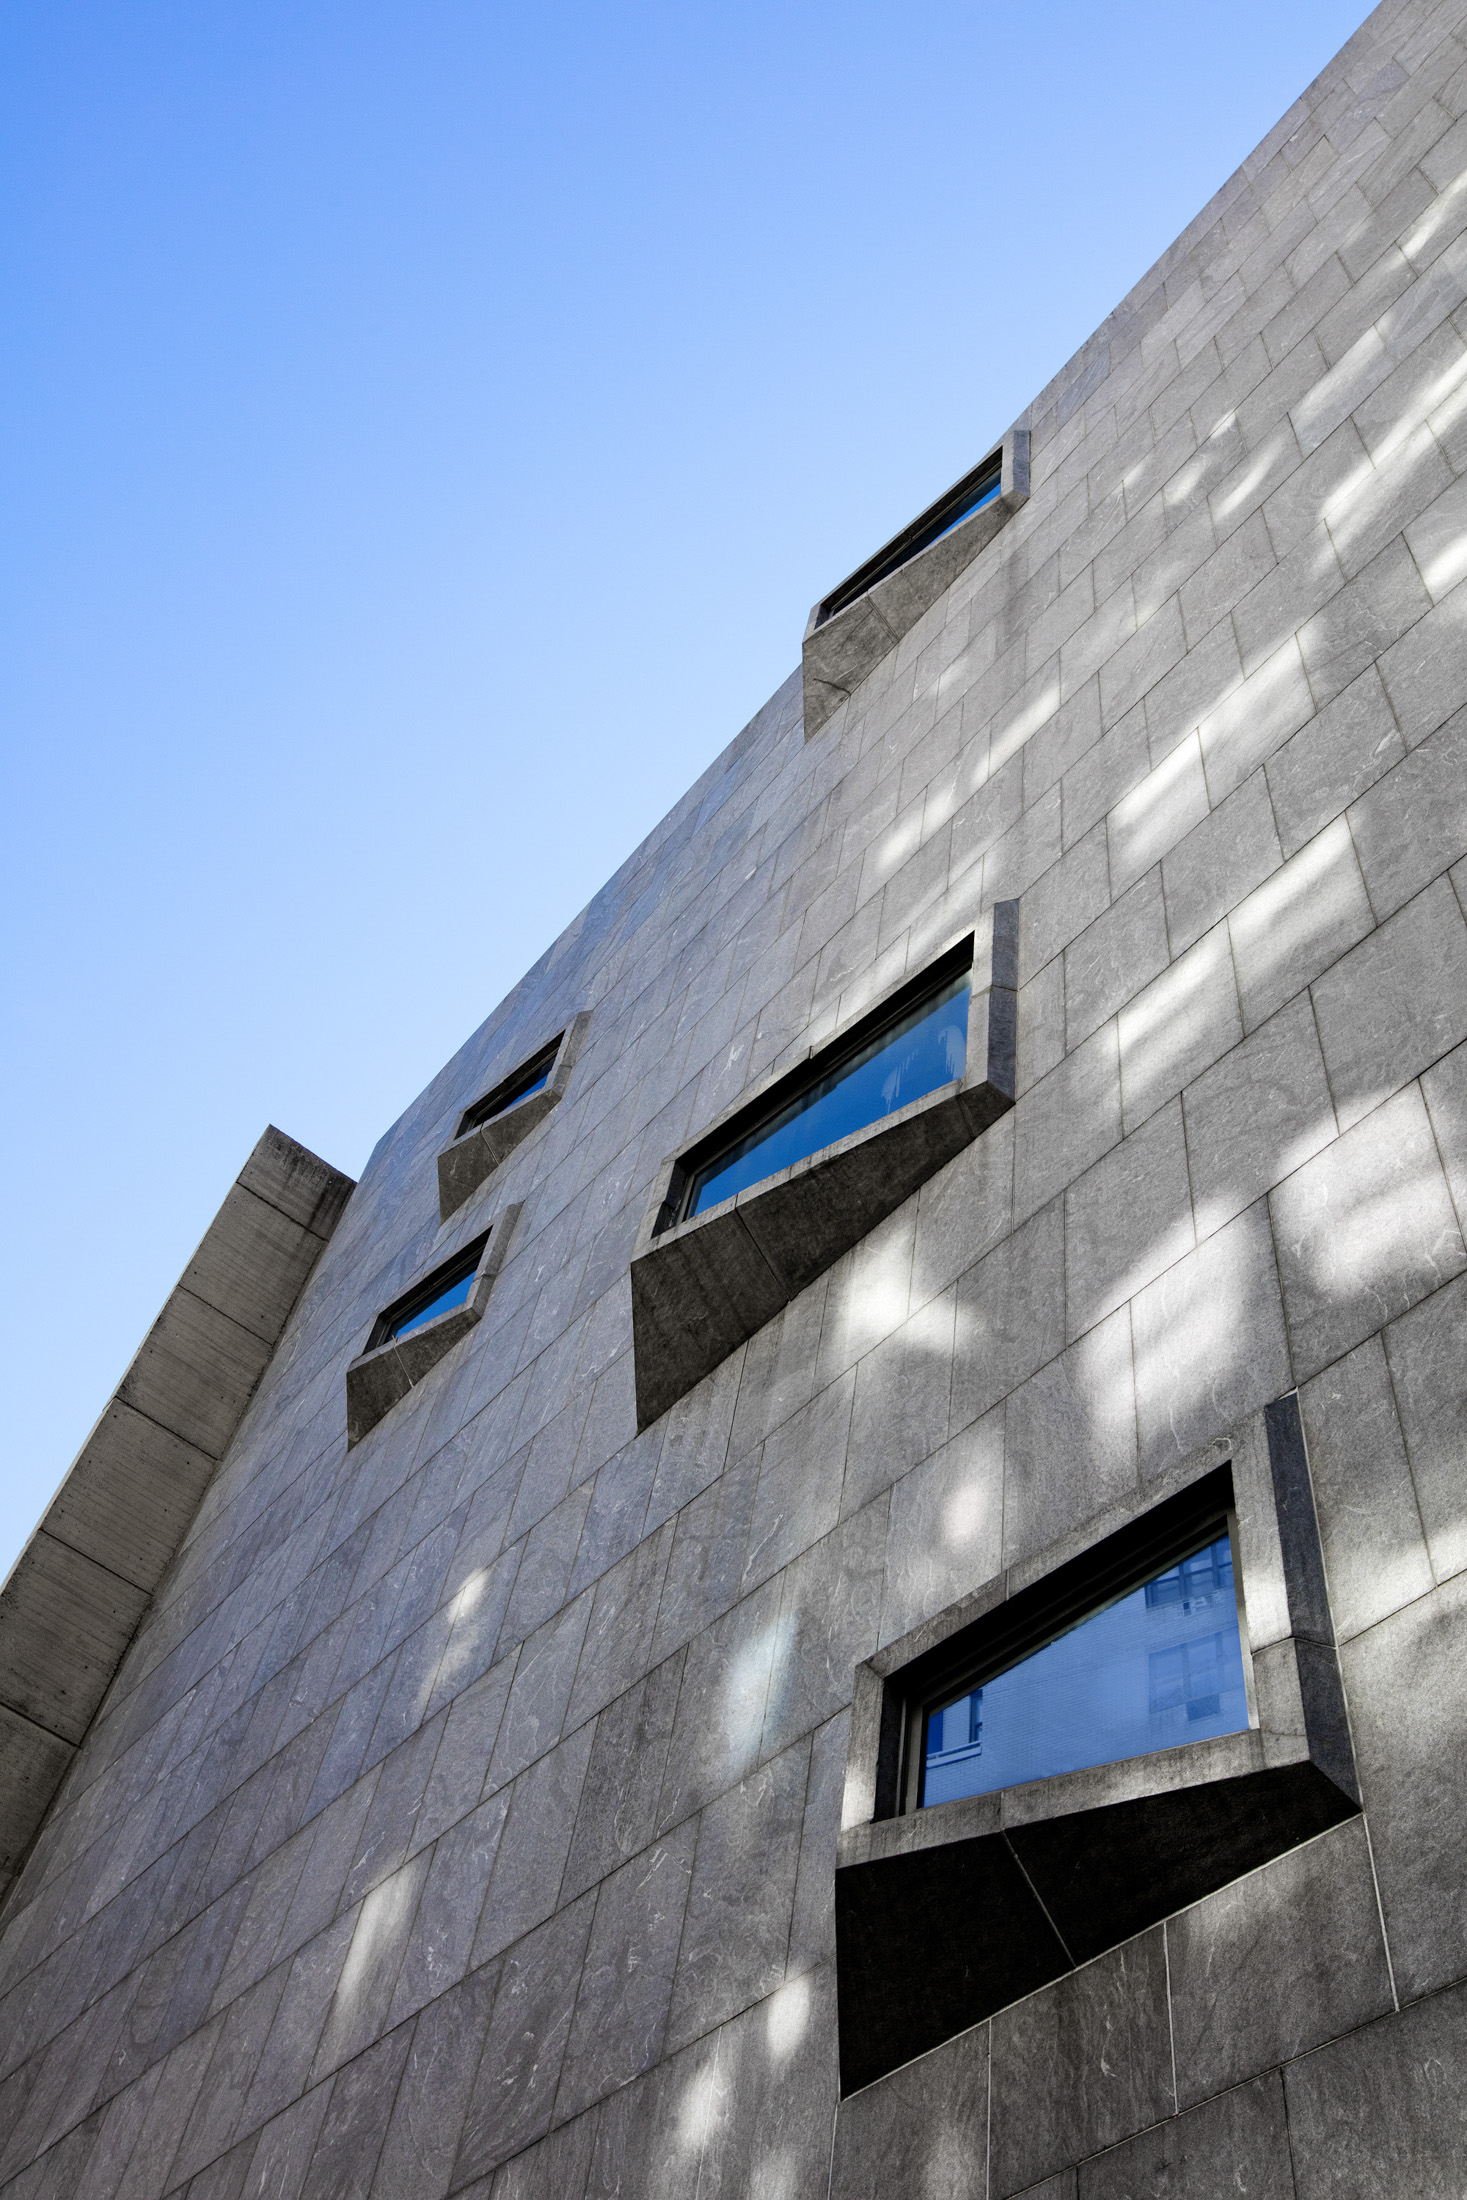 The Breuer Building's Iconic Windows